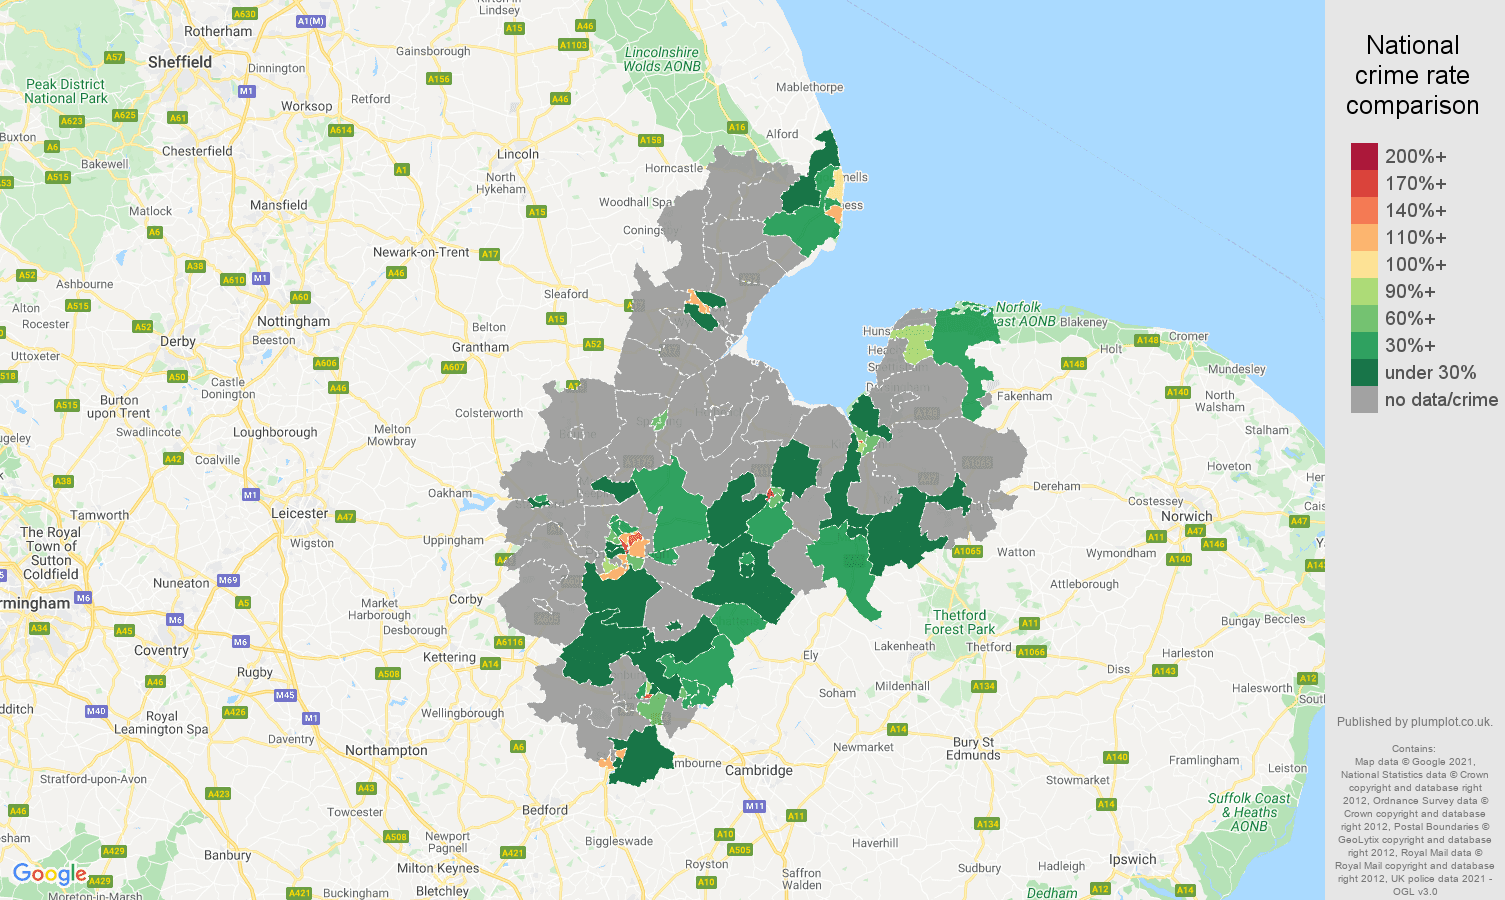 Peterborough theft from the person crime rate comparison map